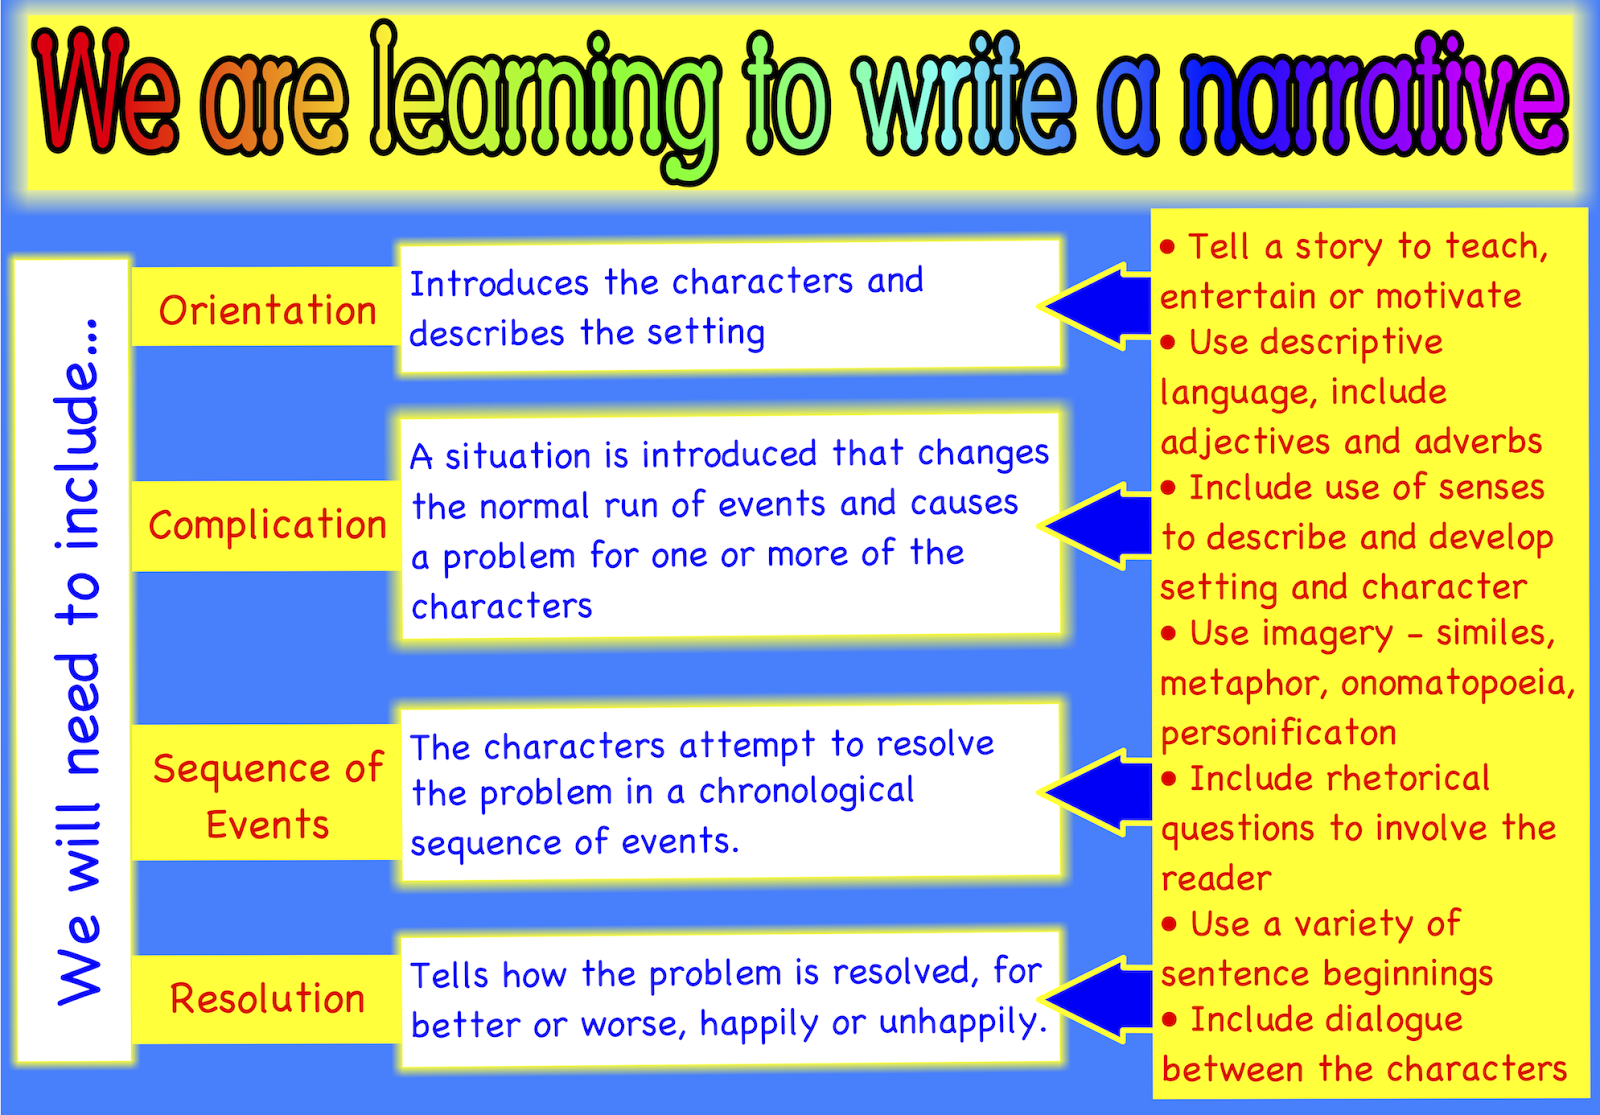 The Little-Known Tips For Writing The Perfect Essay